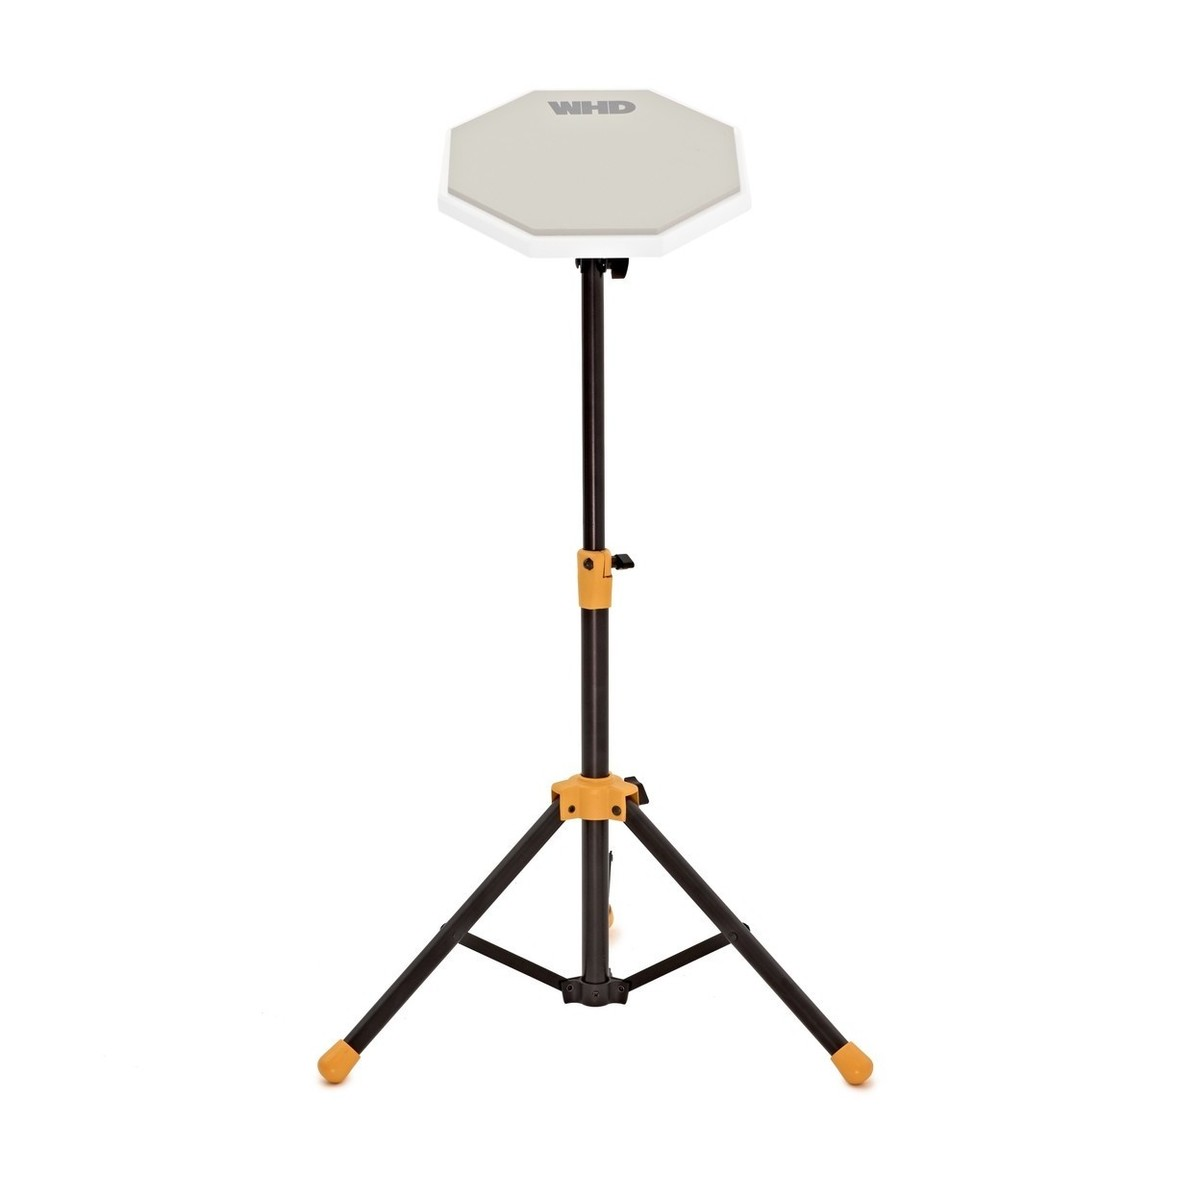 whd 10 practice pad and stand bundle at gear4music. Black Bedroom Furniture Sets. Home Design Ideas